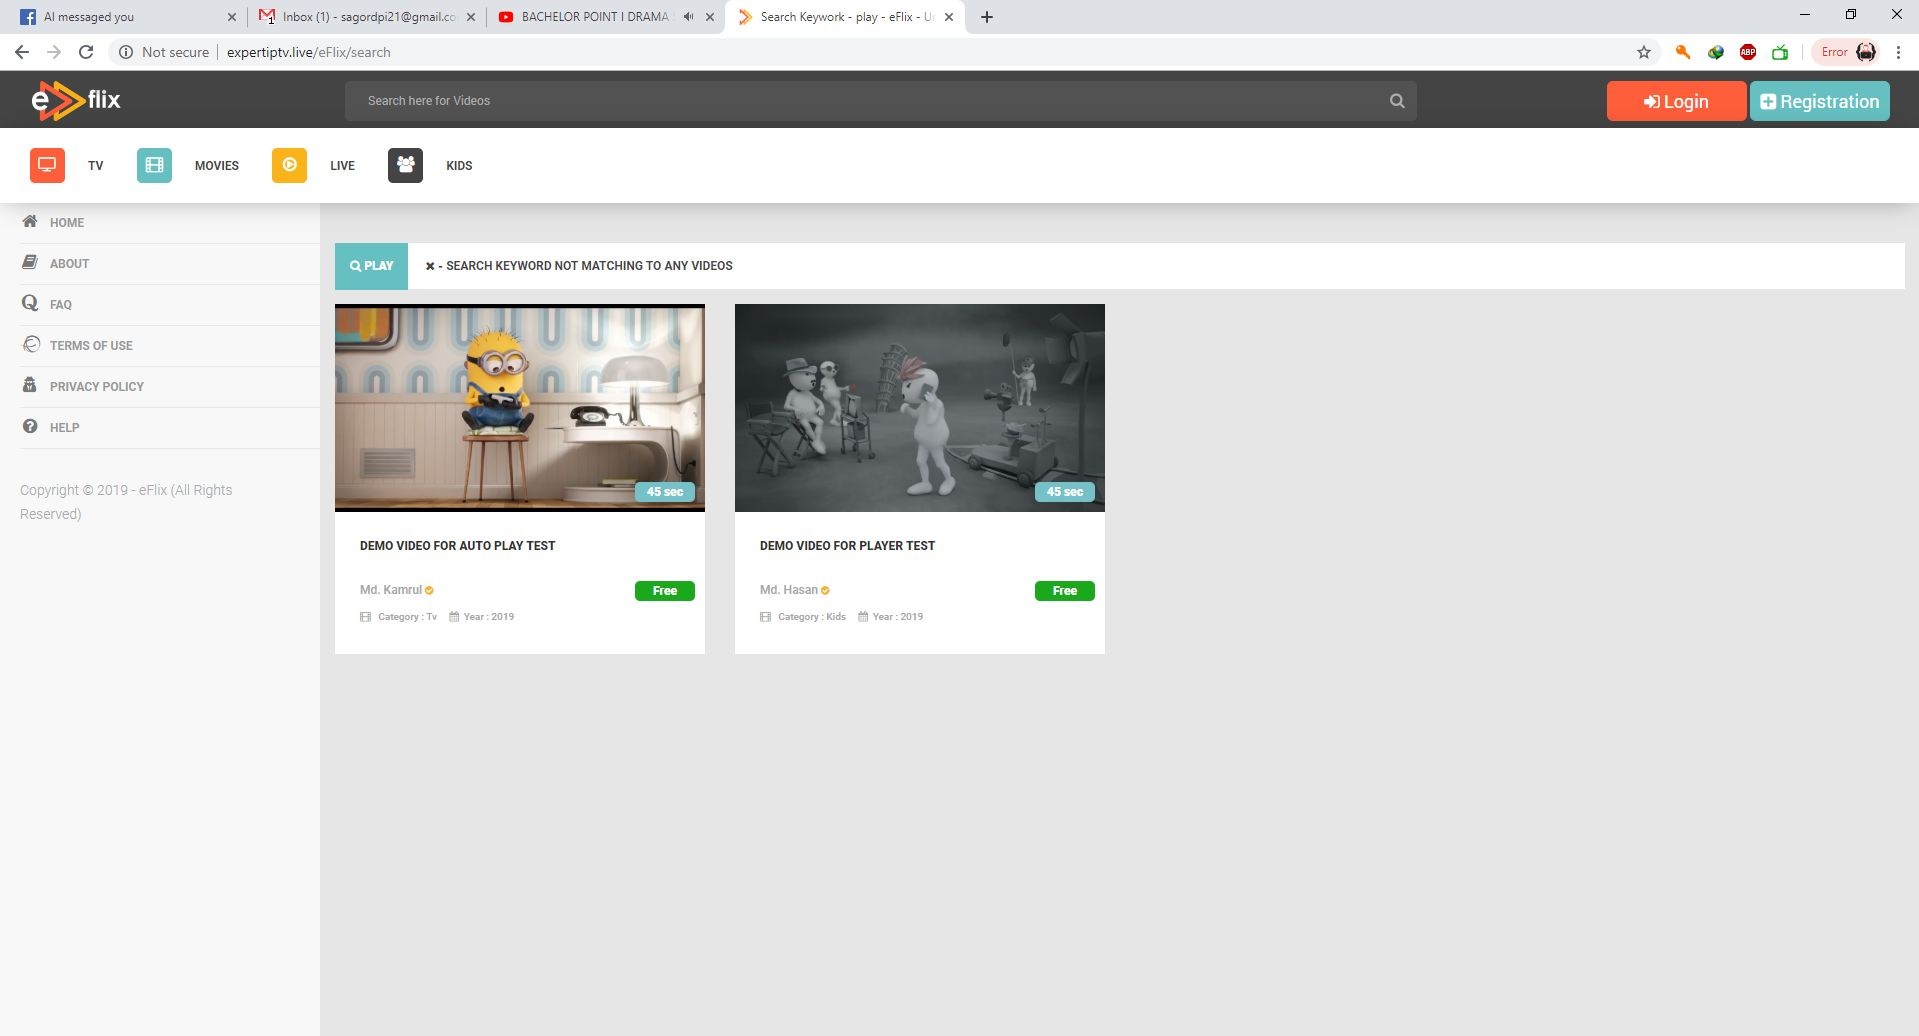 eFlix CMS - Live Video Watch Online PHP Script Screenshot 44